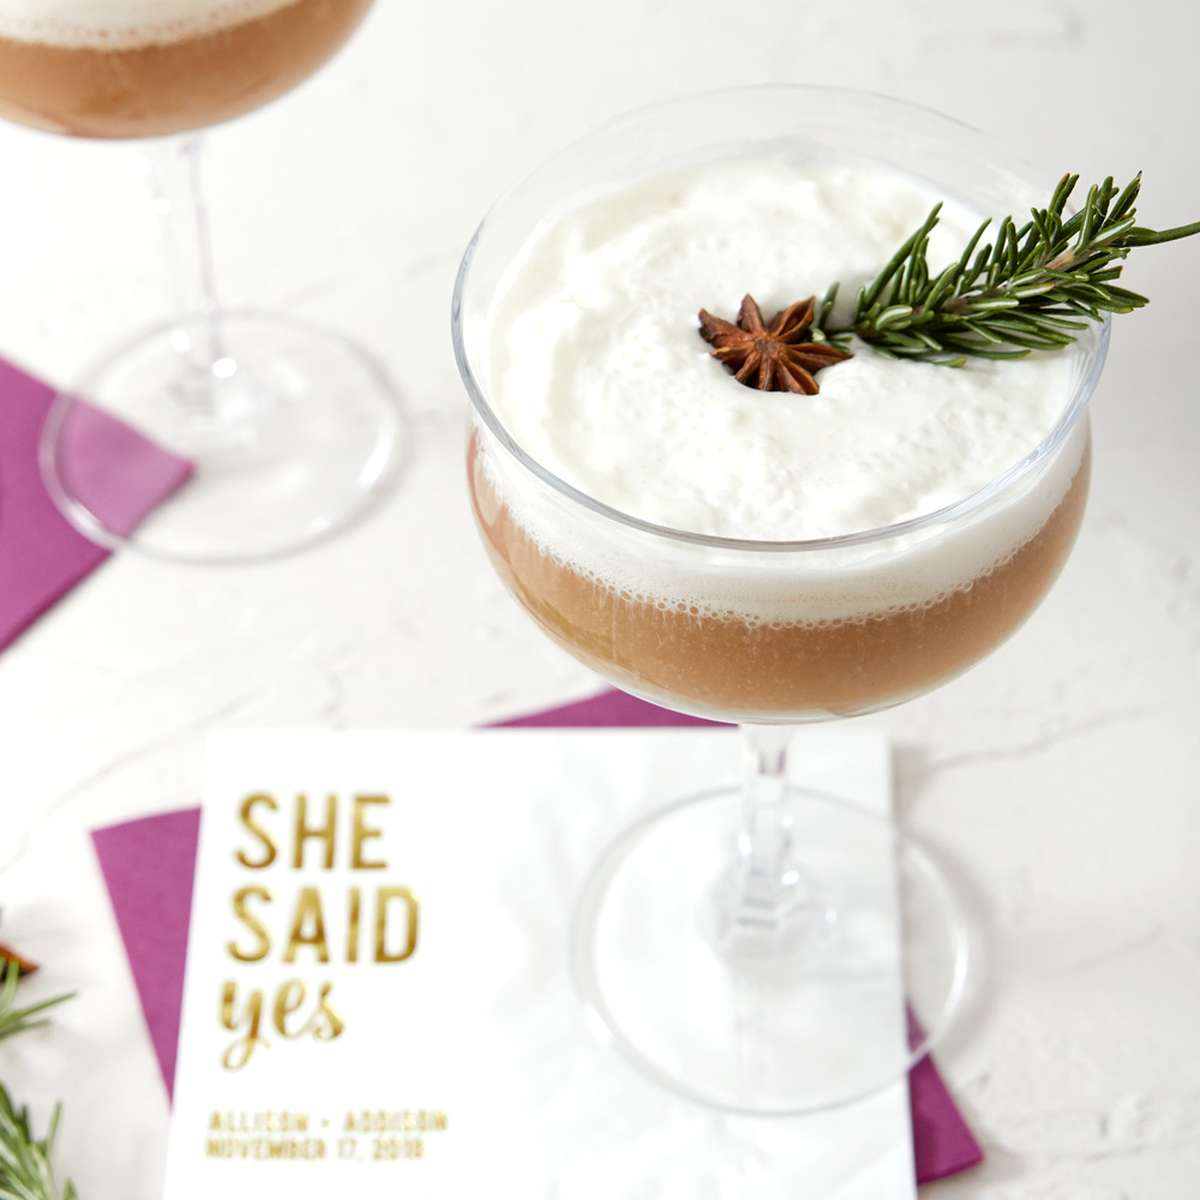 Warm Spiced Rum and Cream cocktail recipe